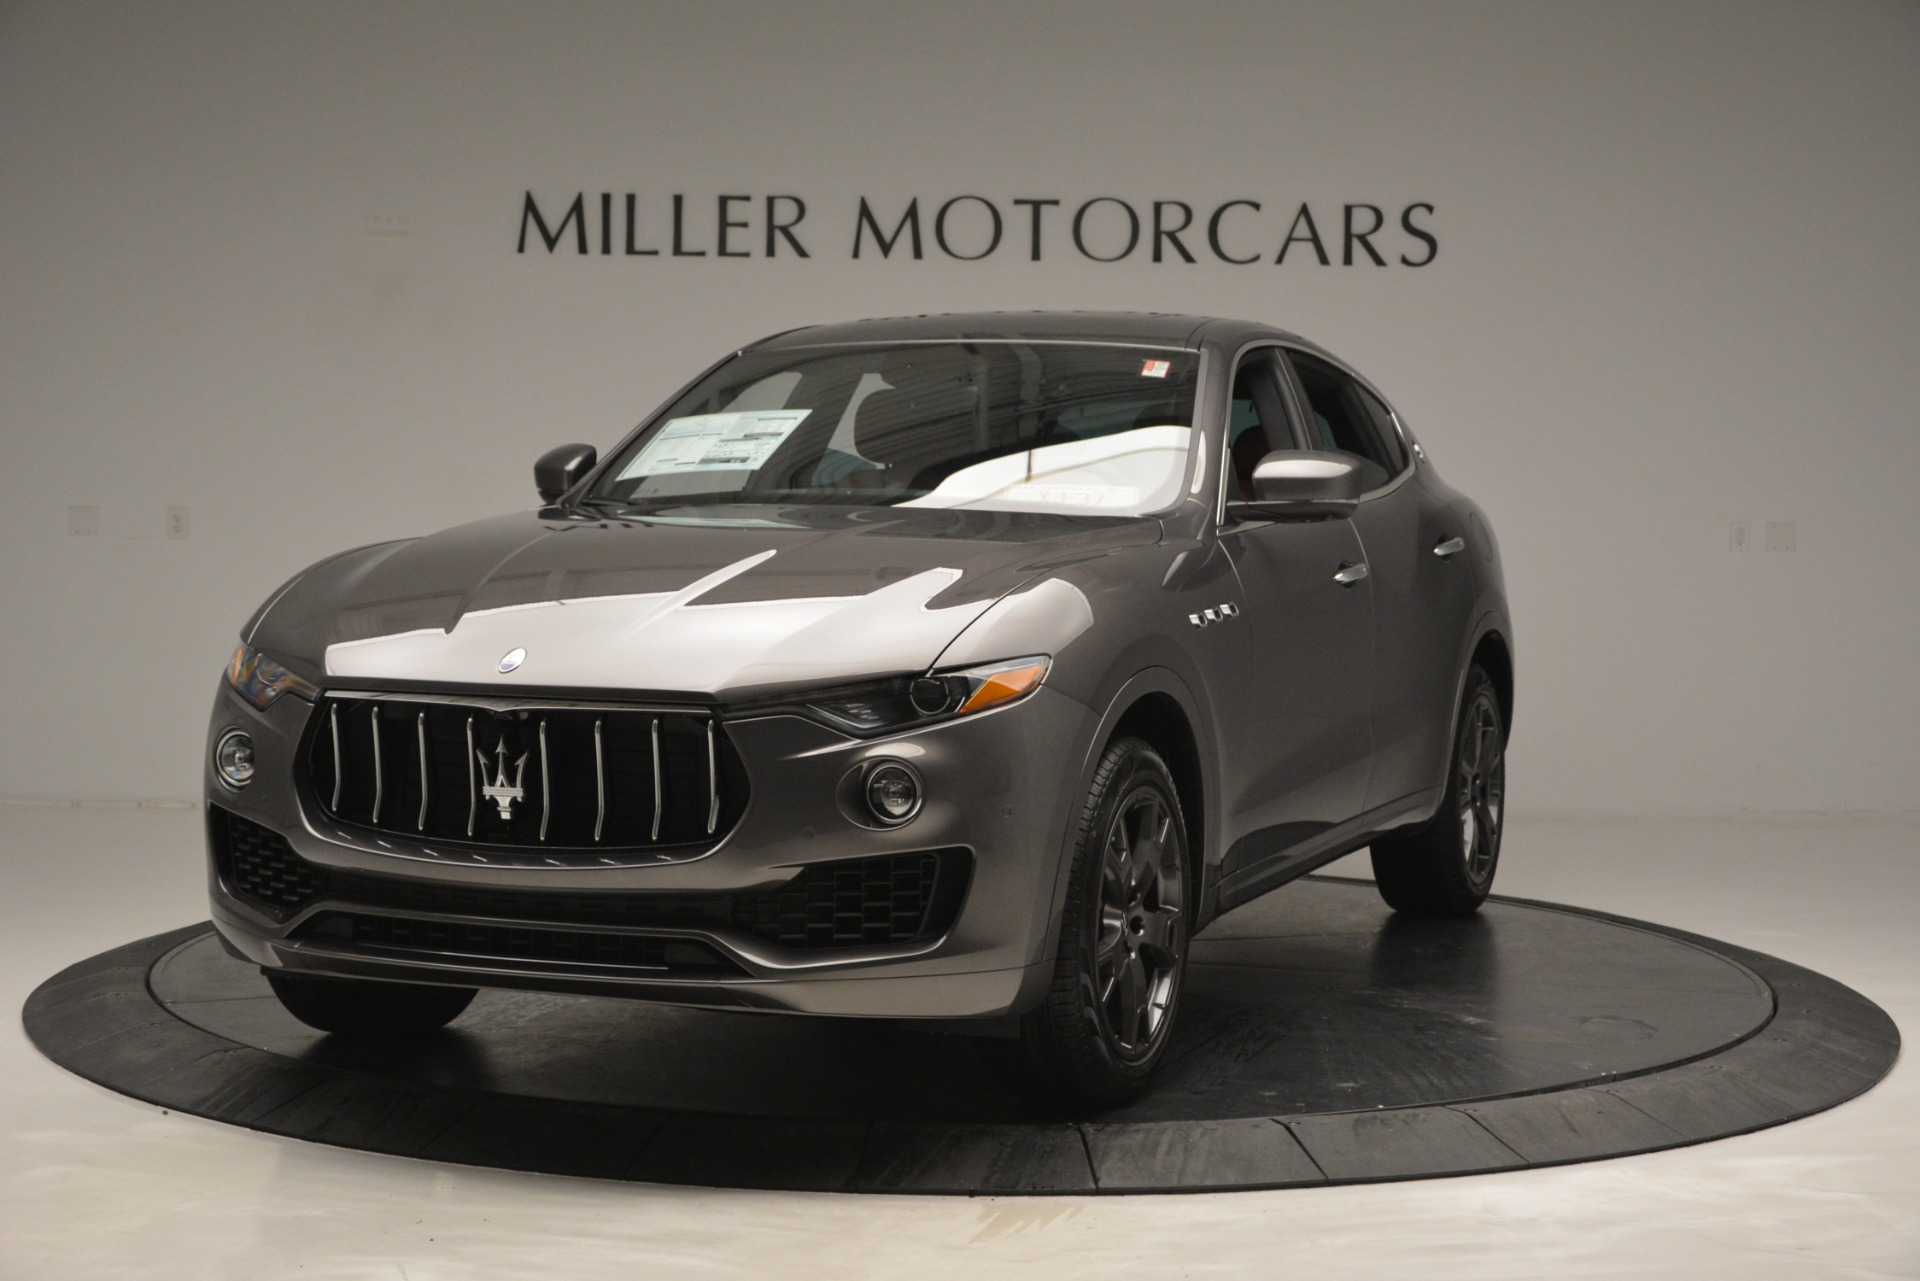 2019 maserati levante q4 stock # m2256 for sale near greenwich, ct